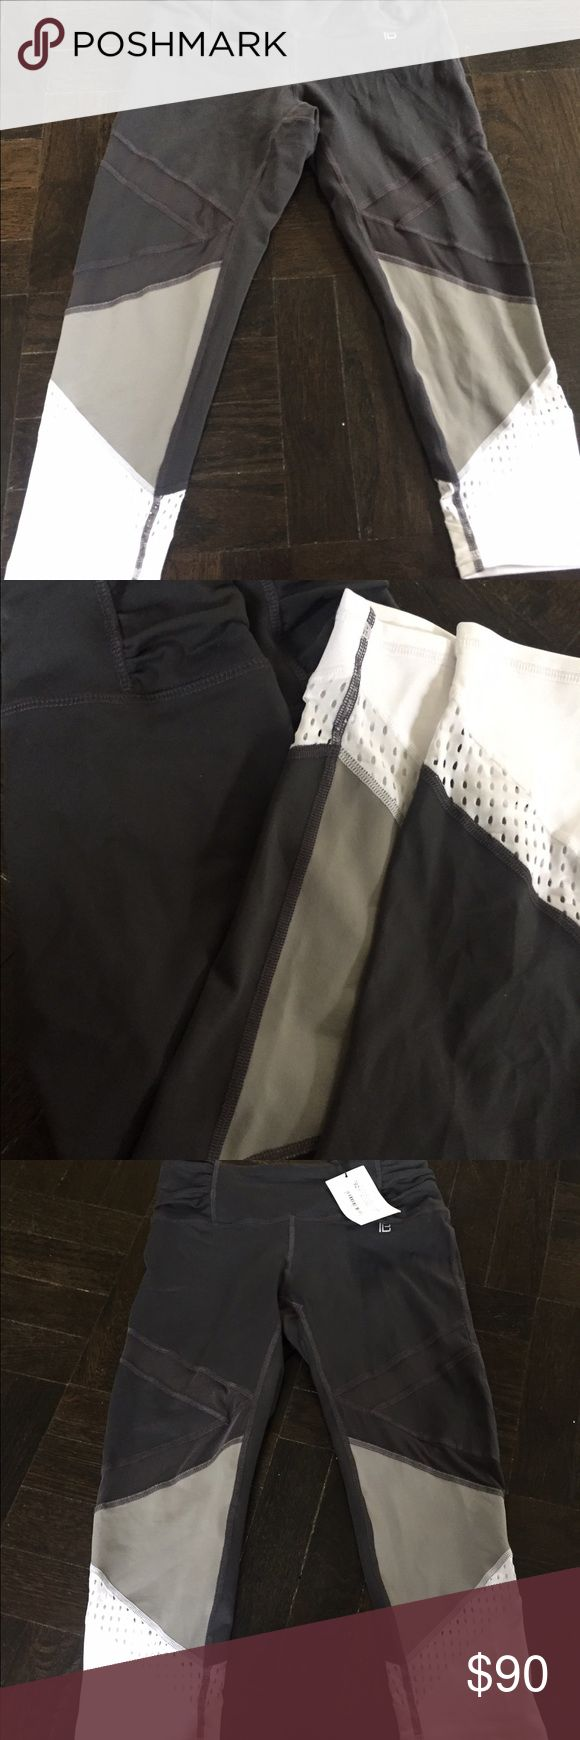 Bandier Athletic Cropped Leggings - Sz. L!!! Bandier Gray Athletic Leggings in Size L. Dark Gray, Light Gray, and White geometric pattern. White mesh on bottom portion. Absolutely awesome leggings that you will get tons of compliments in!!! Bandier Pants Leggings